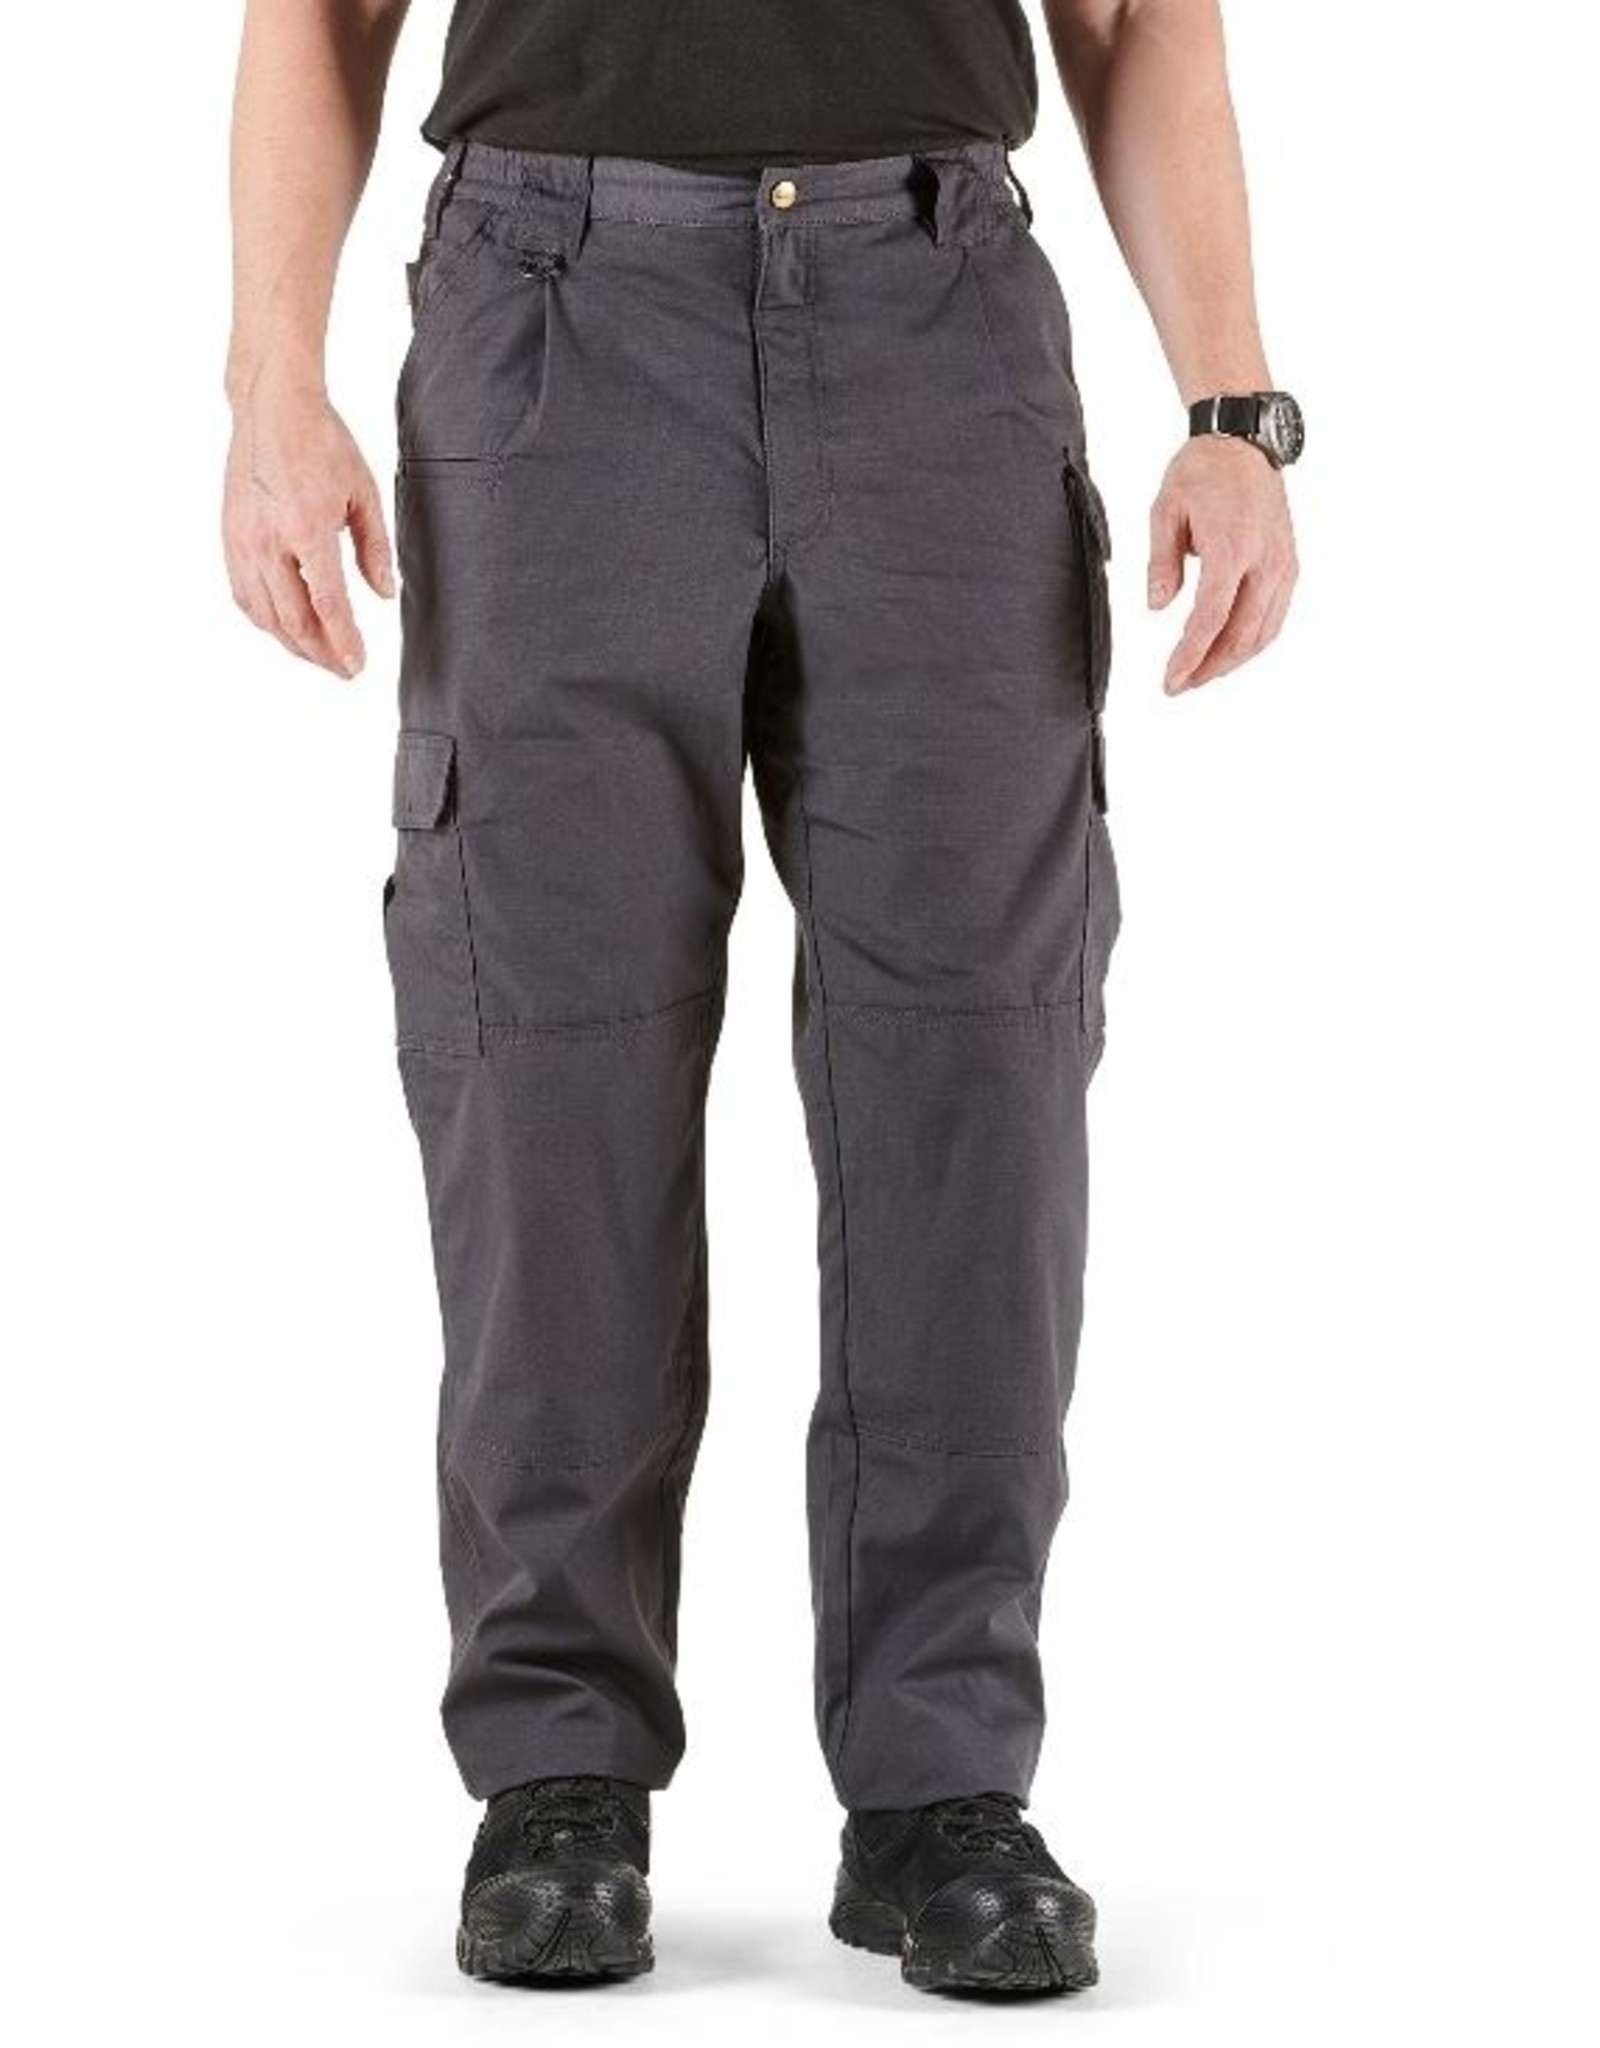 5.11 TACLITE® PRO RIPSTOP PANT - ONLINE ONLY